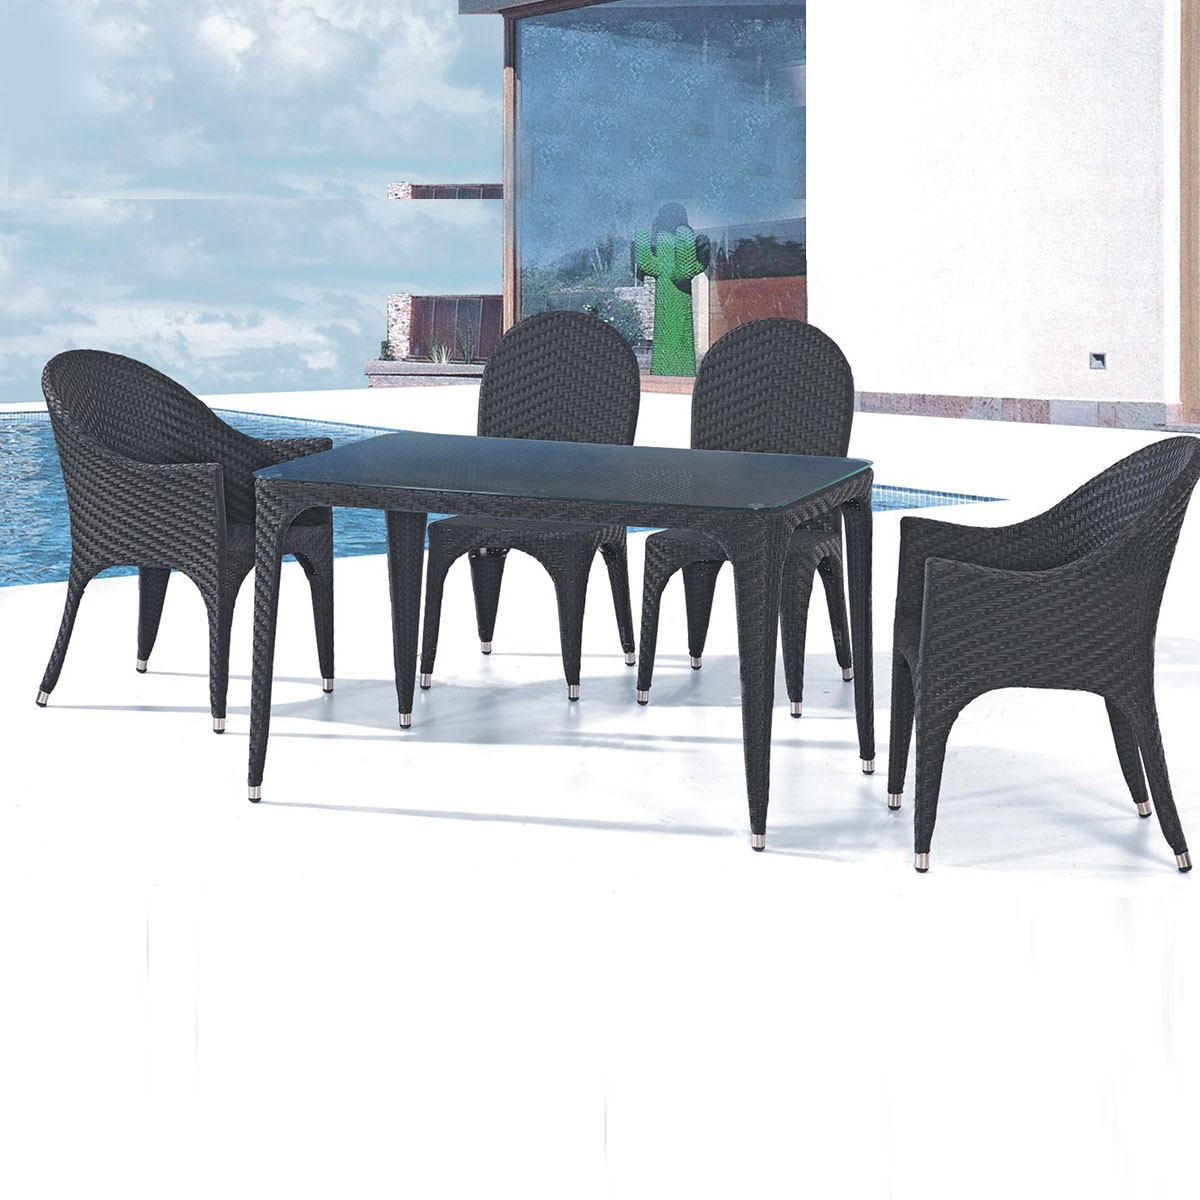 PE Rattan 5 Pieces Dining Set: Dining Table, 2 Chairs, 2 Armless Chairs (LLS-6111+1111)